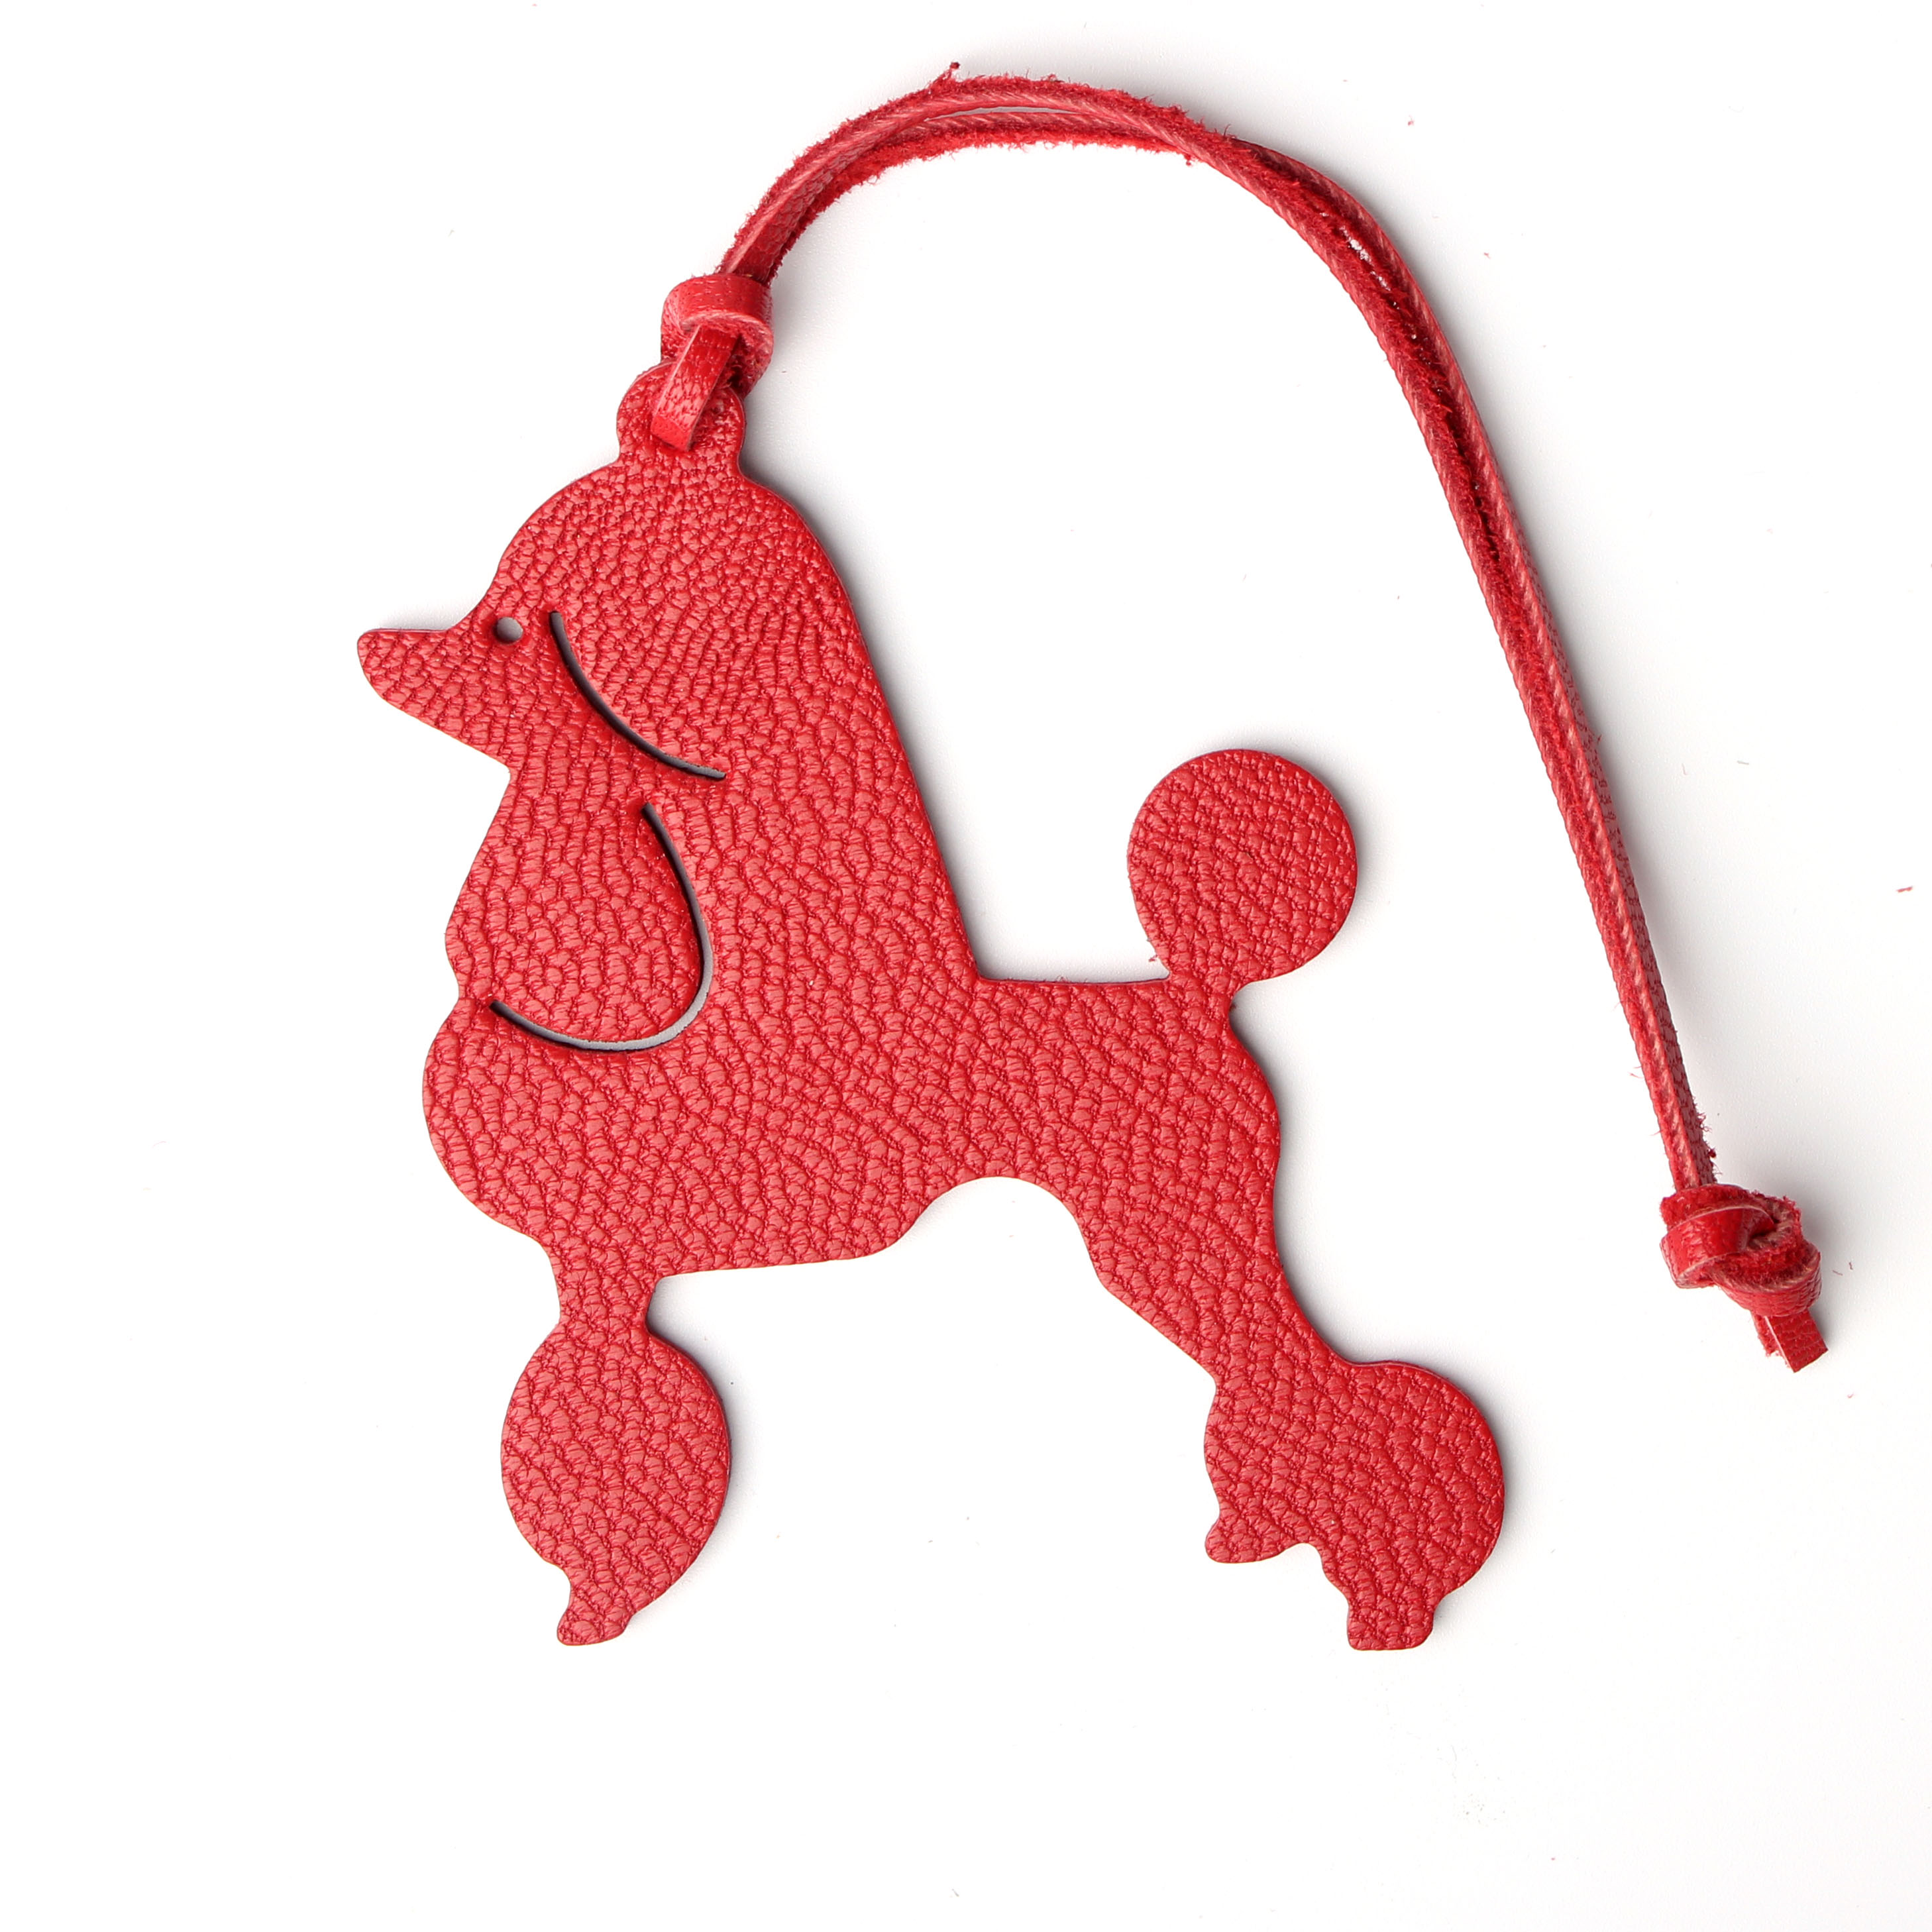 Famous Brand Custom Made Natural Genuine Leather Deer Dog Keychain Pendant Key Chain For Ladies Women Bag Charm Accessories